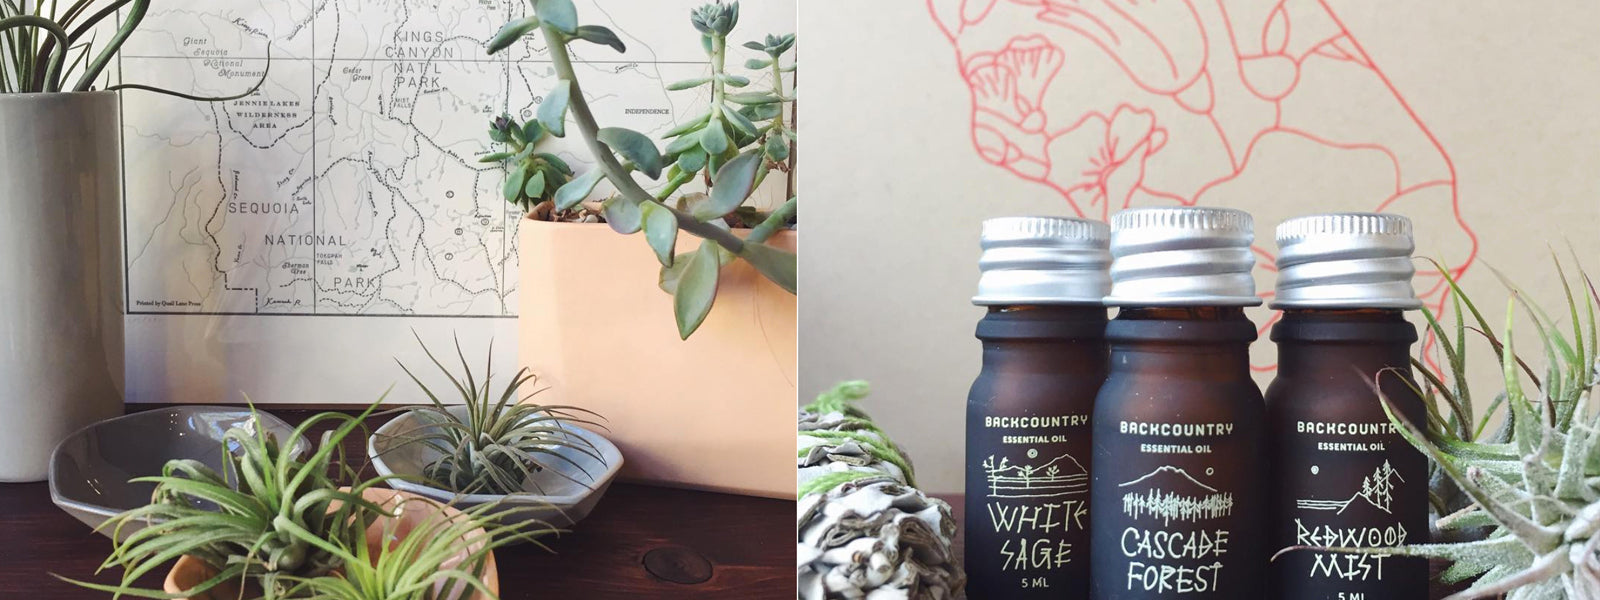 products on a shelf- letterpress map, plants and a vase